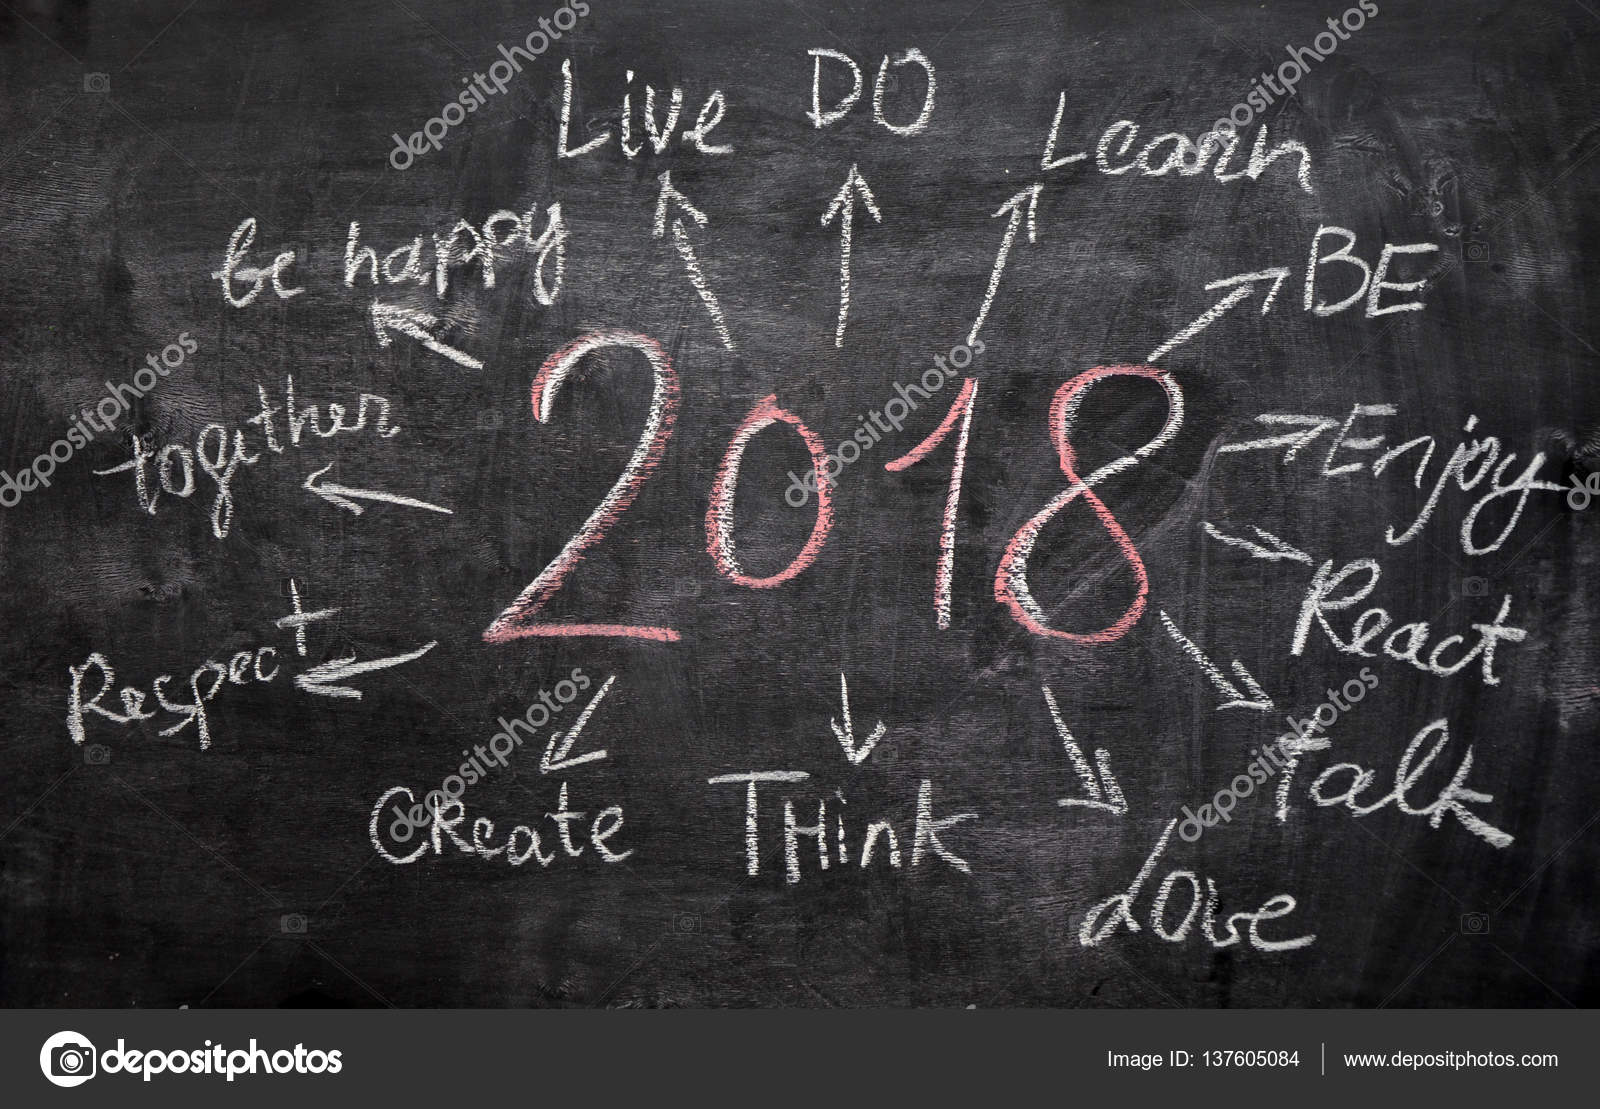 New Year Resolution Goals Written On Cardboard With Hand Drawn Sketches